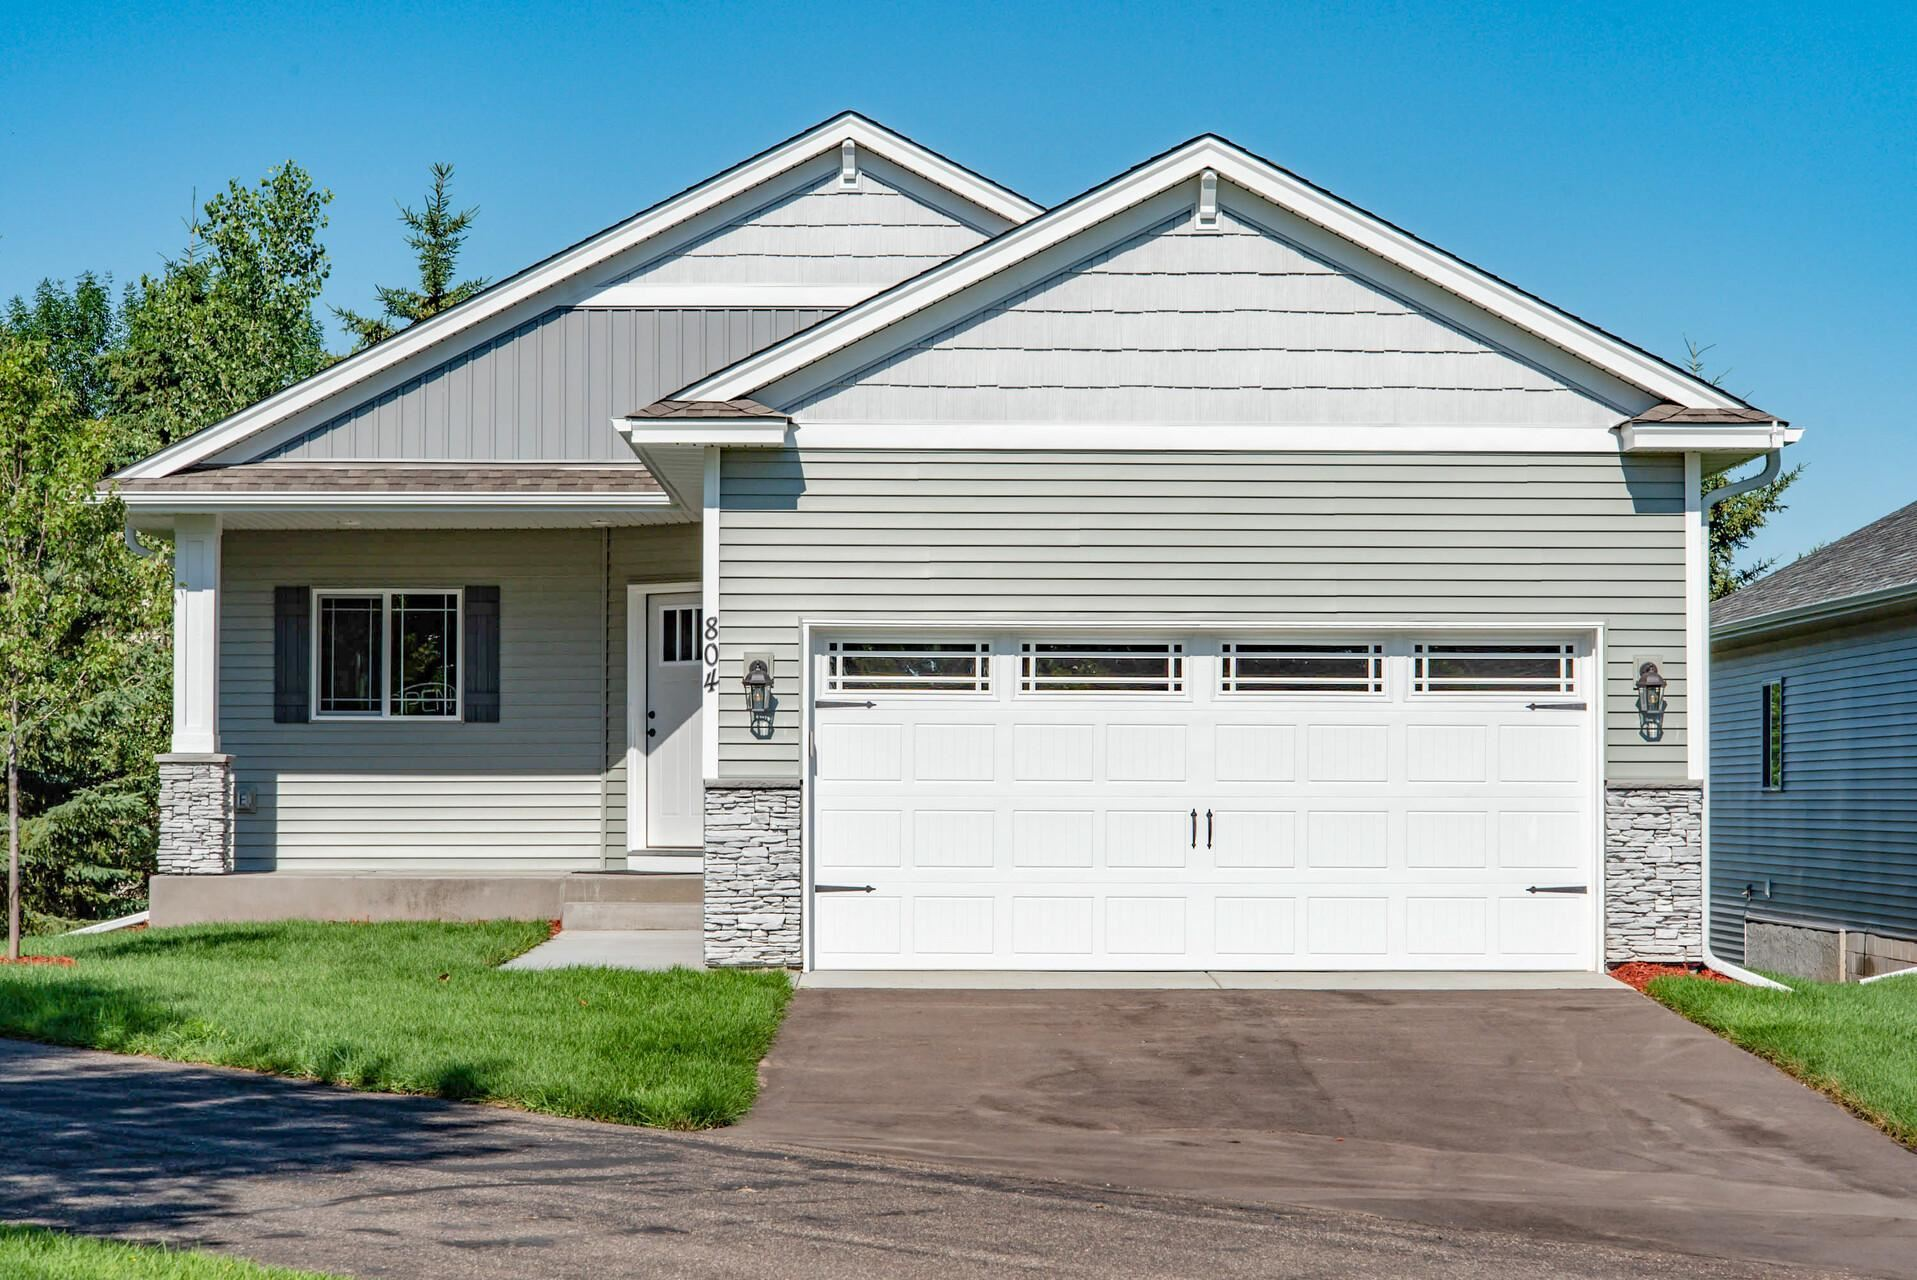 804 Winsome Way NW, Isanti, MN 55040 - MLS#: 5286393